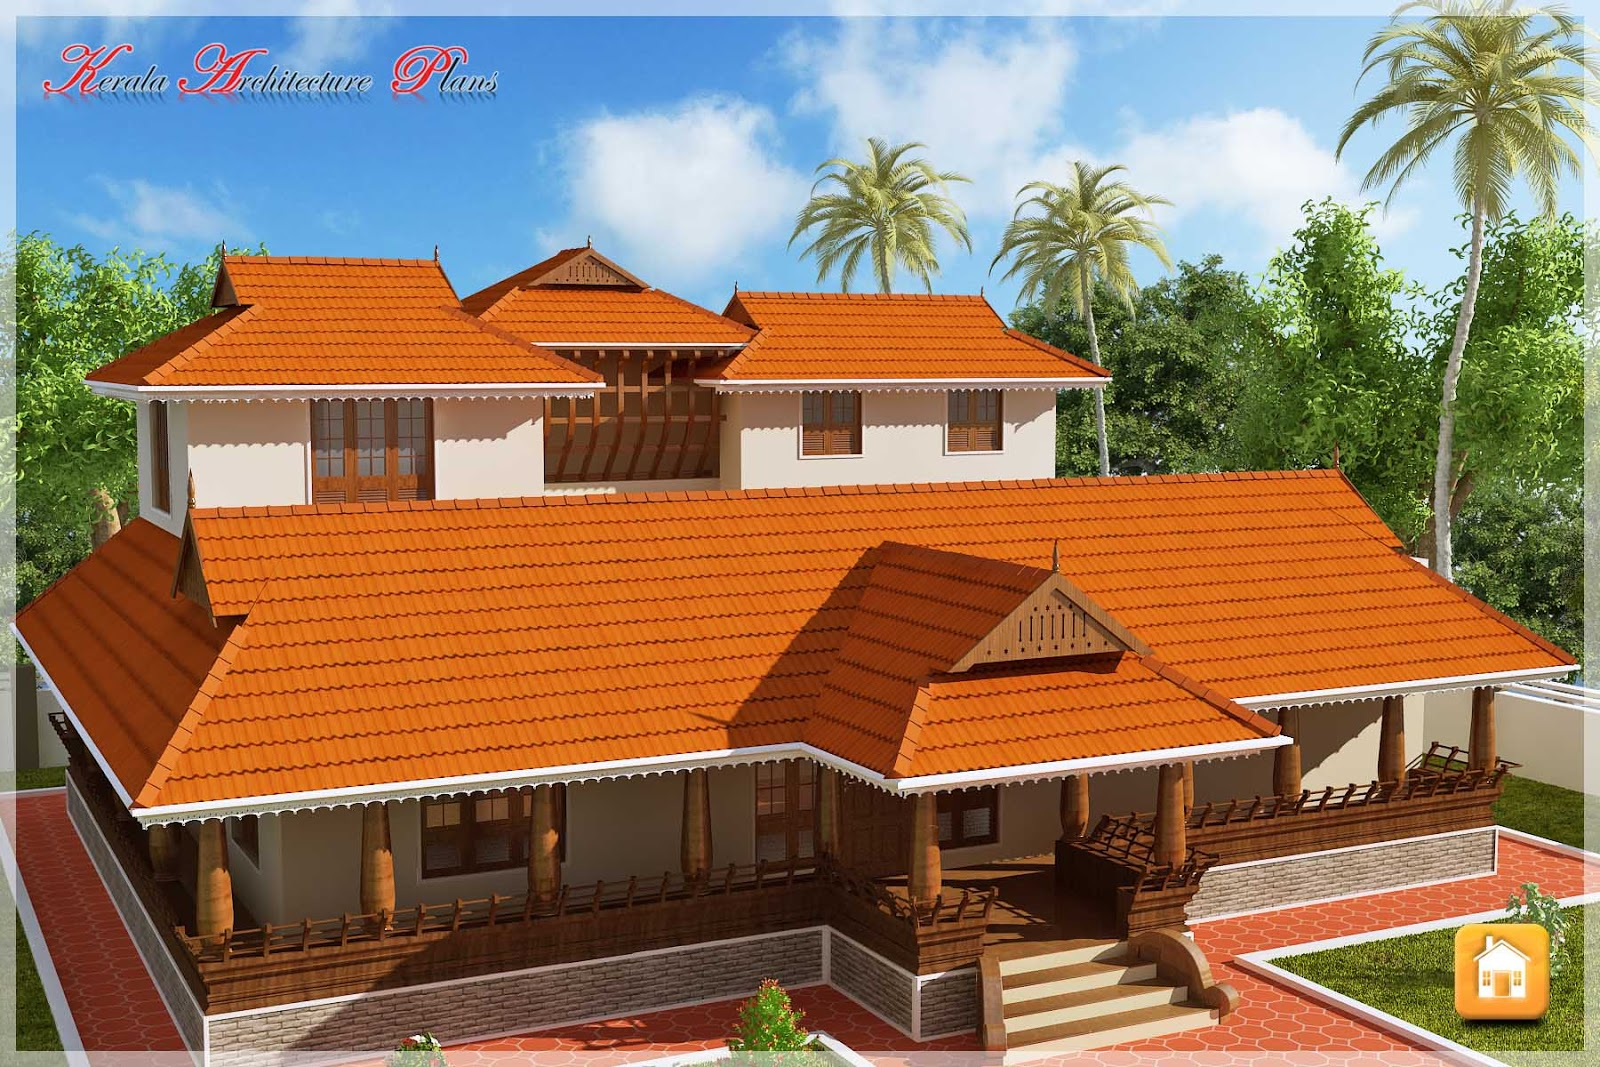 Kerala traditional style house plans joy studio design for Kerala traditional home plans with photos